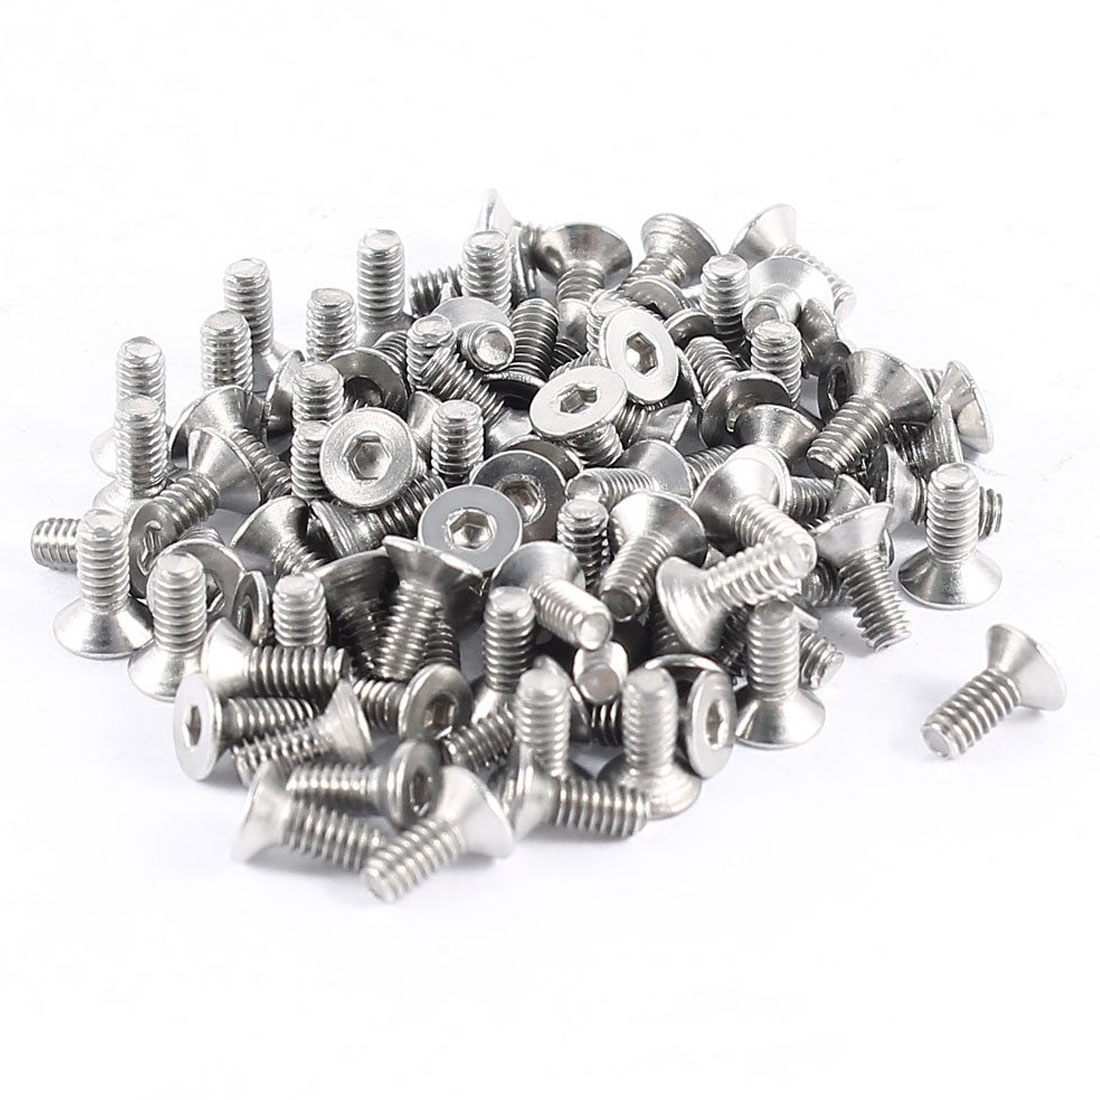 CNIM Hot 100pcs 304HC Stainless Steel Hex Countersunk Flat Bolts Screws <font><b>M2x5mm</b></font> image